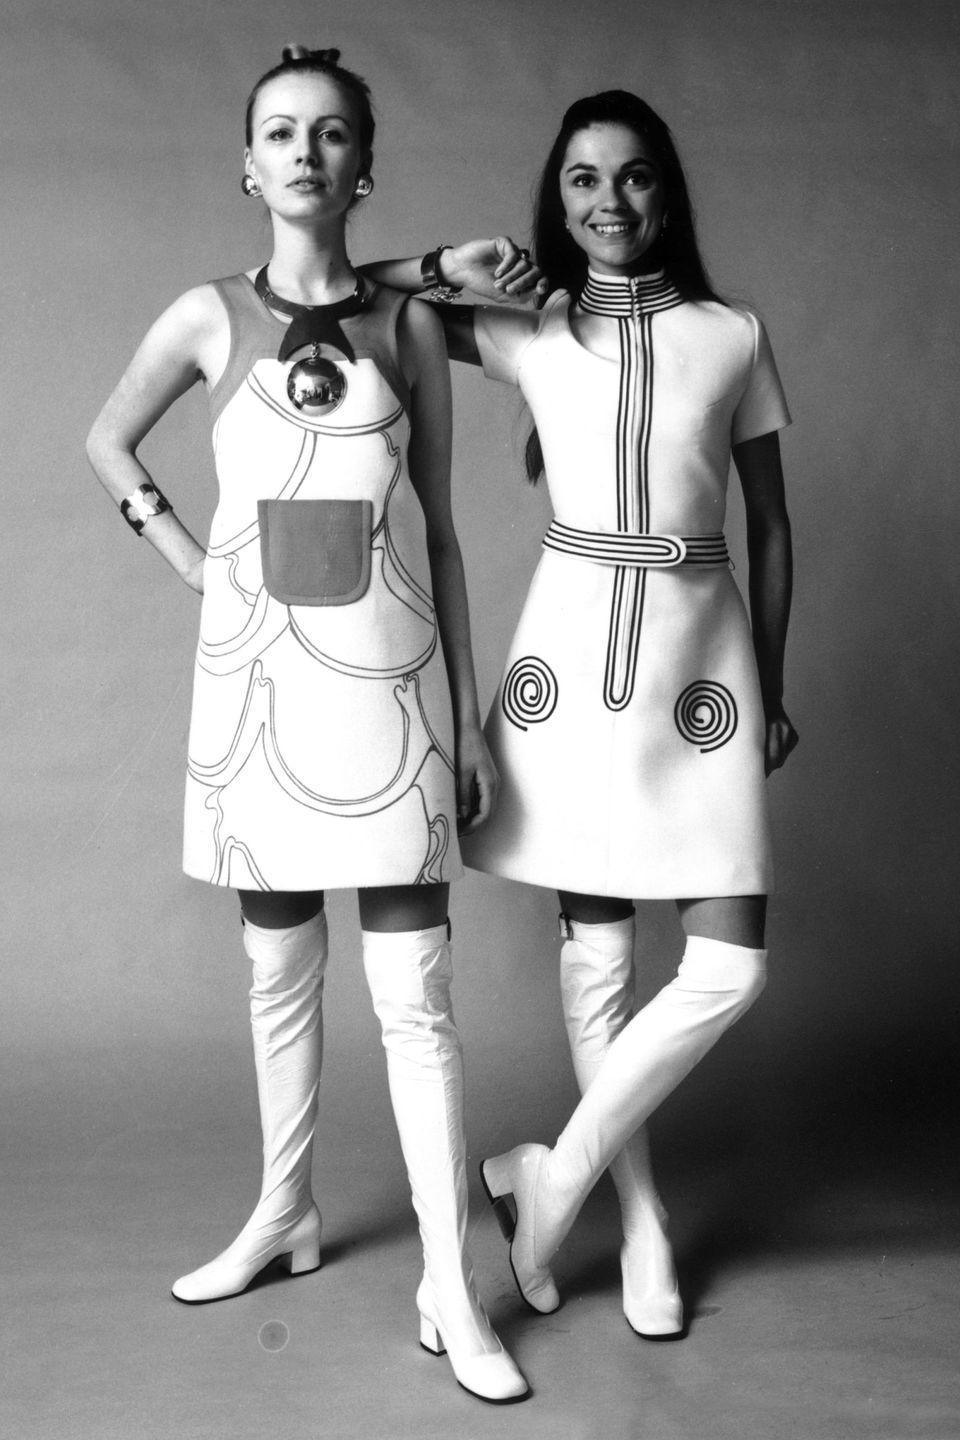 <p>Star Trek meets go-go girl, complete with metallic accents, mini dresses and PVC boots. 🖖 </p>